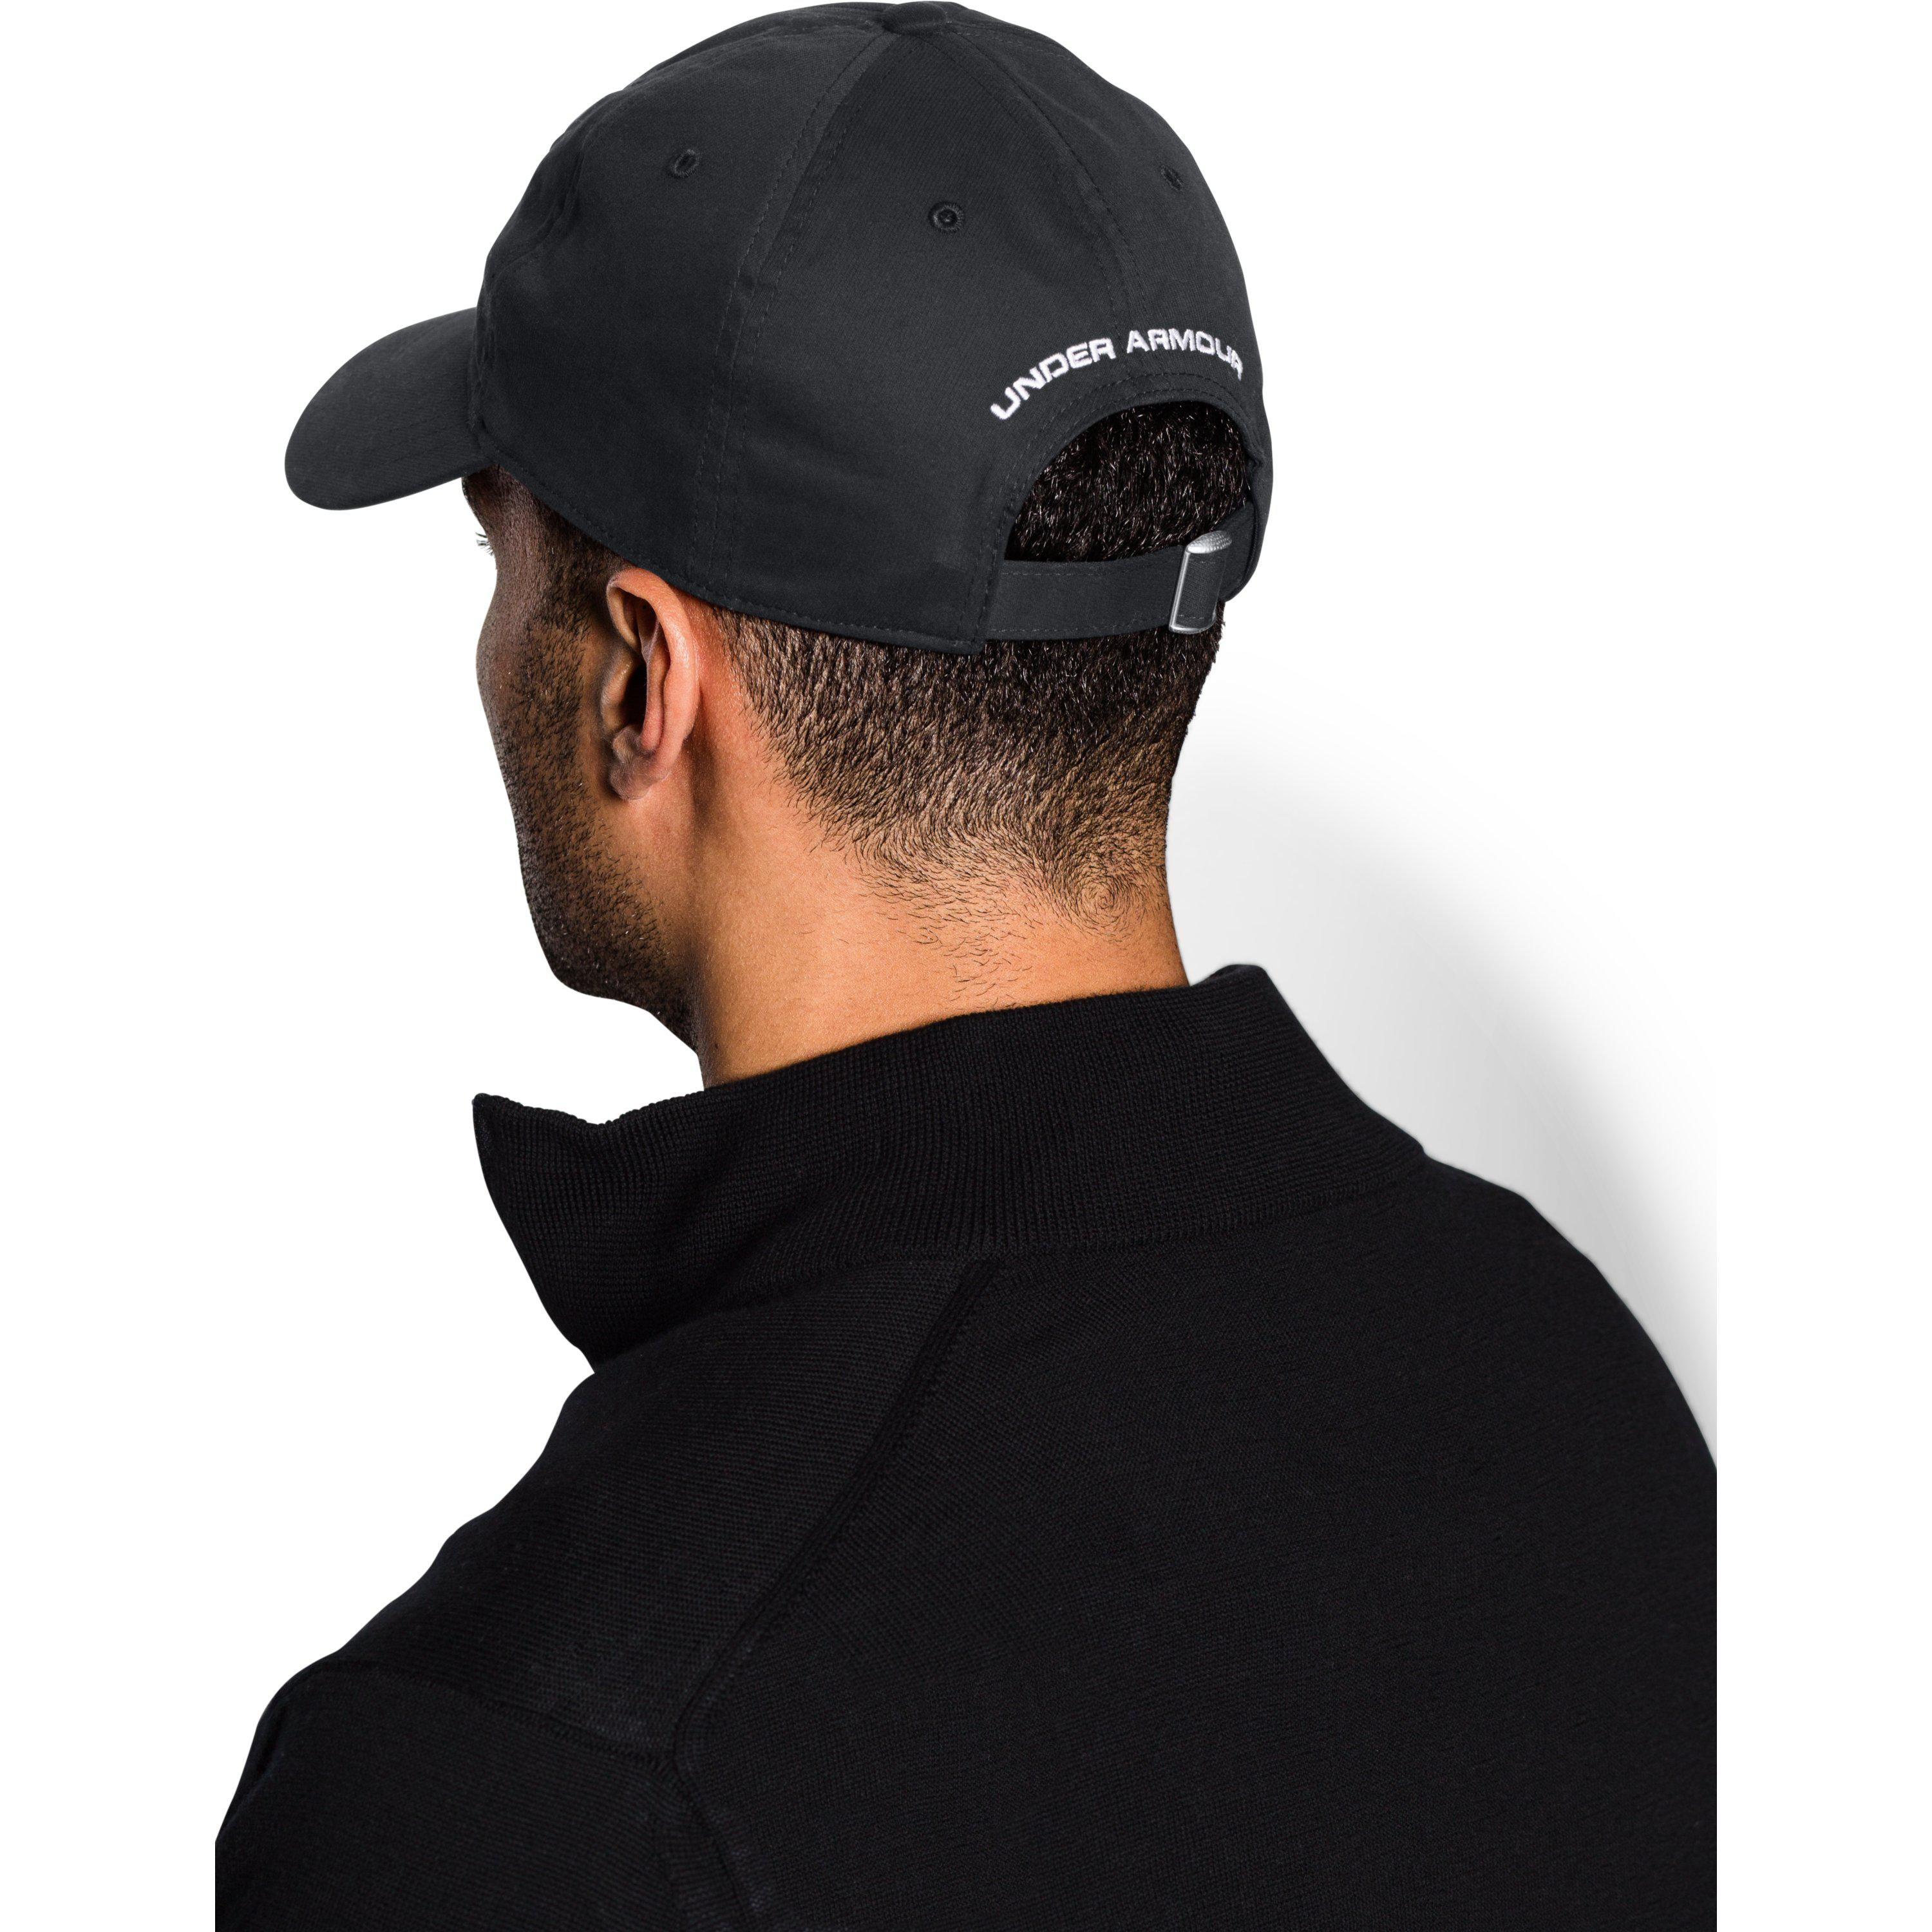 Lyst - Under Armour Chino Cap in Black for Men b338c4271854